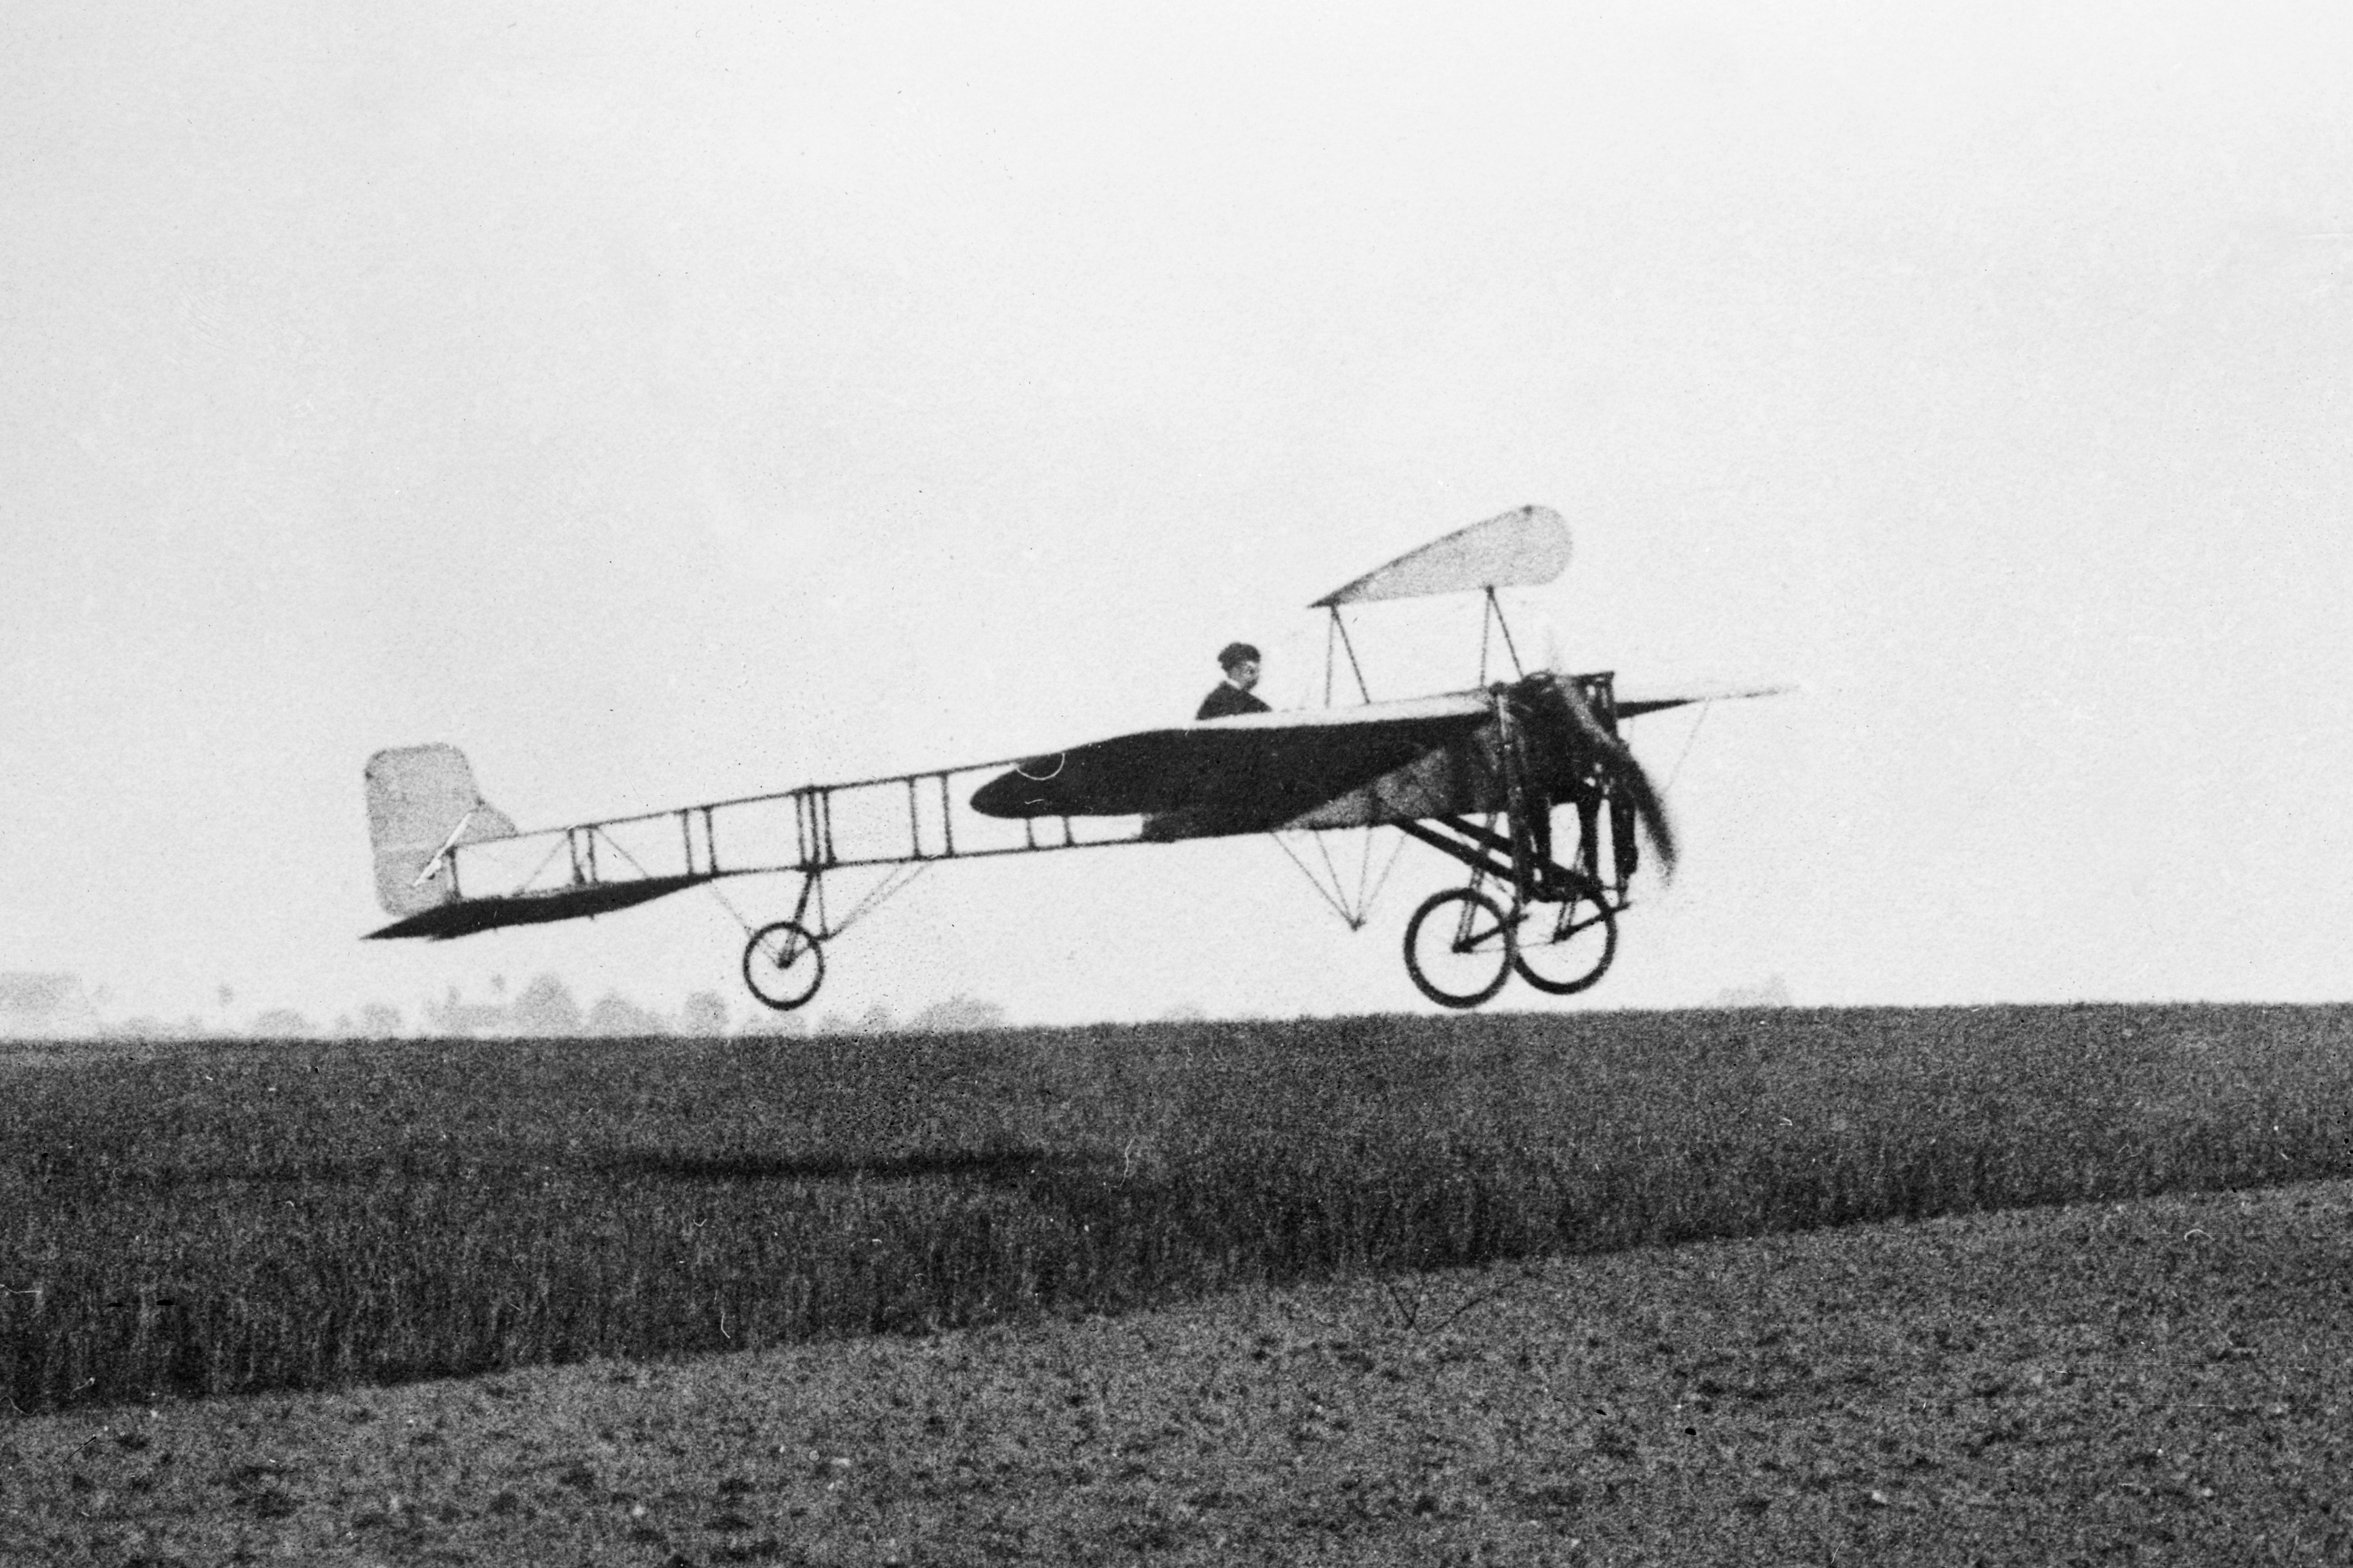 Louis Blériot in flight over field, 1909.